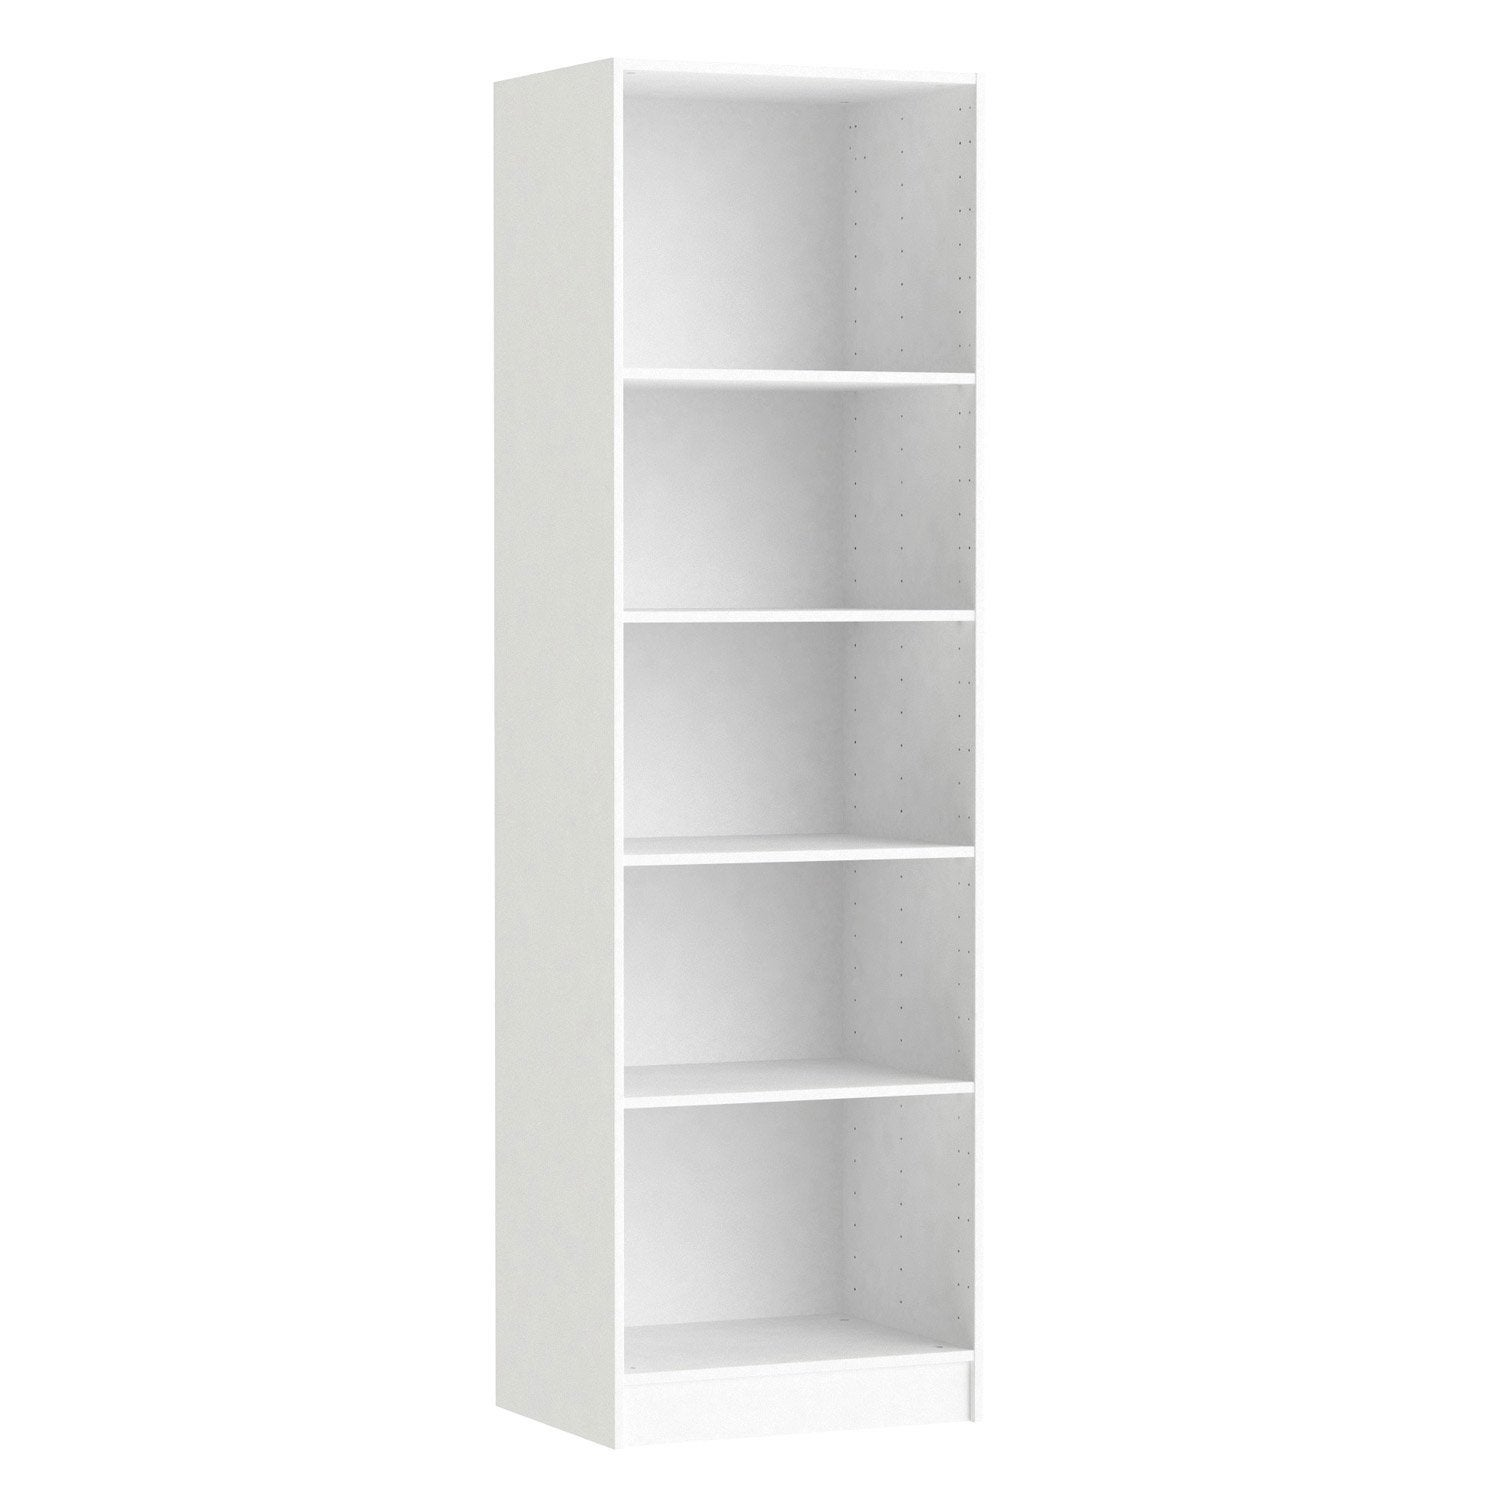 Caisson spaceo home 200 x 60 x 45 cm blanc leroy merlin for Meuble bureau 60 x 60